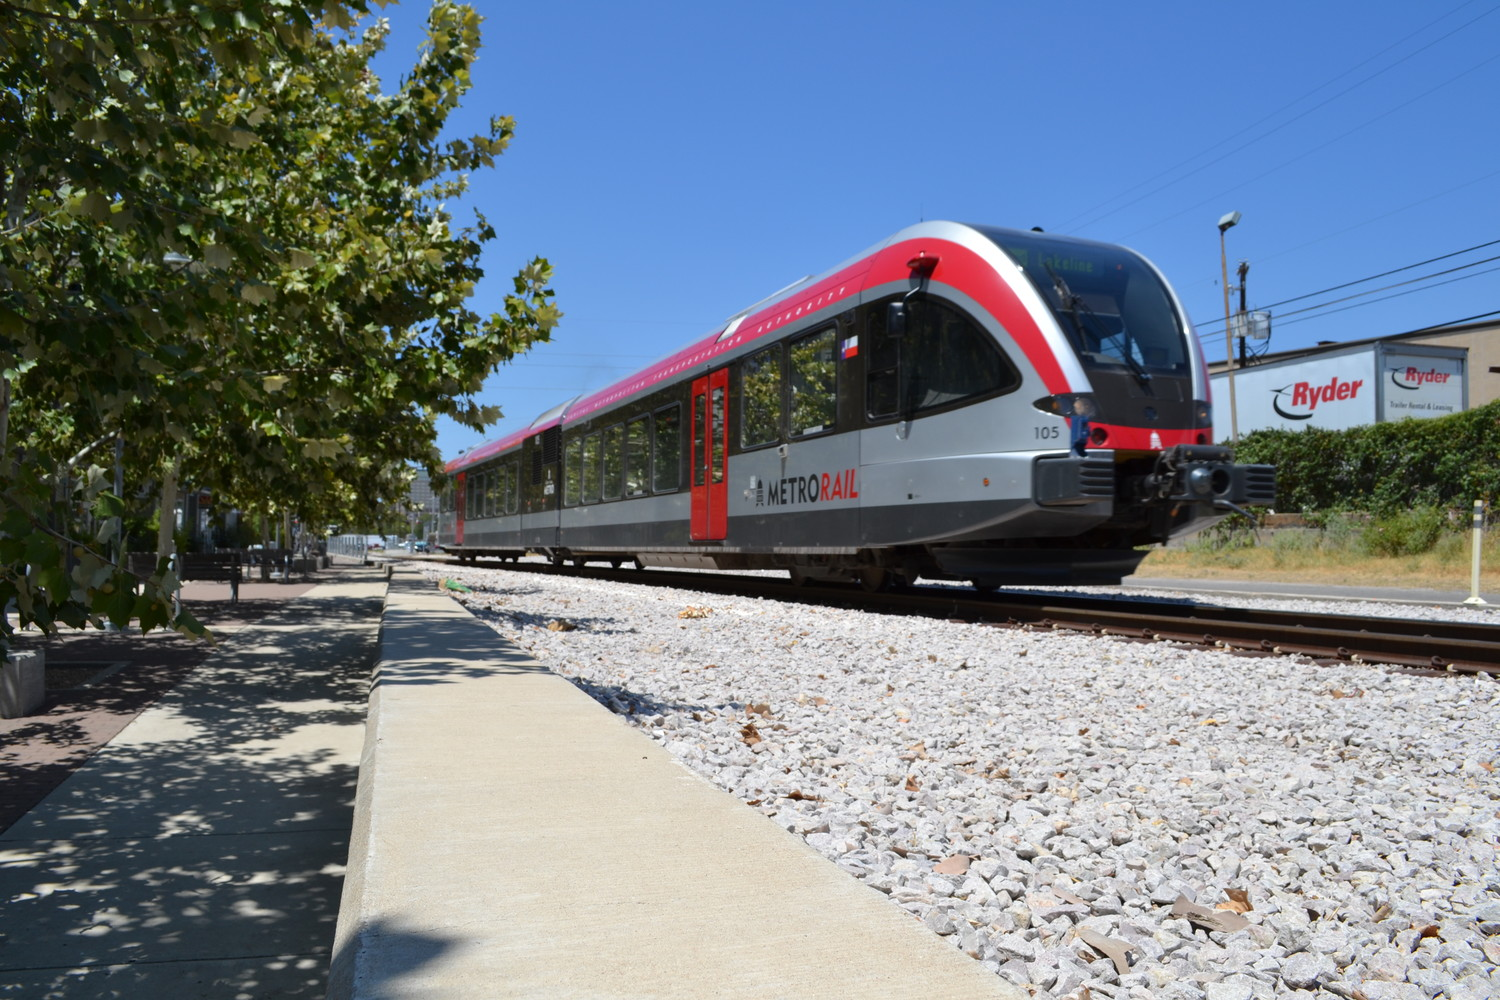 Capital Metro added four new trains to the MetroRail service Sunday in an effort to reduce overcrowded trains during peak times in the morning and afternoon.